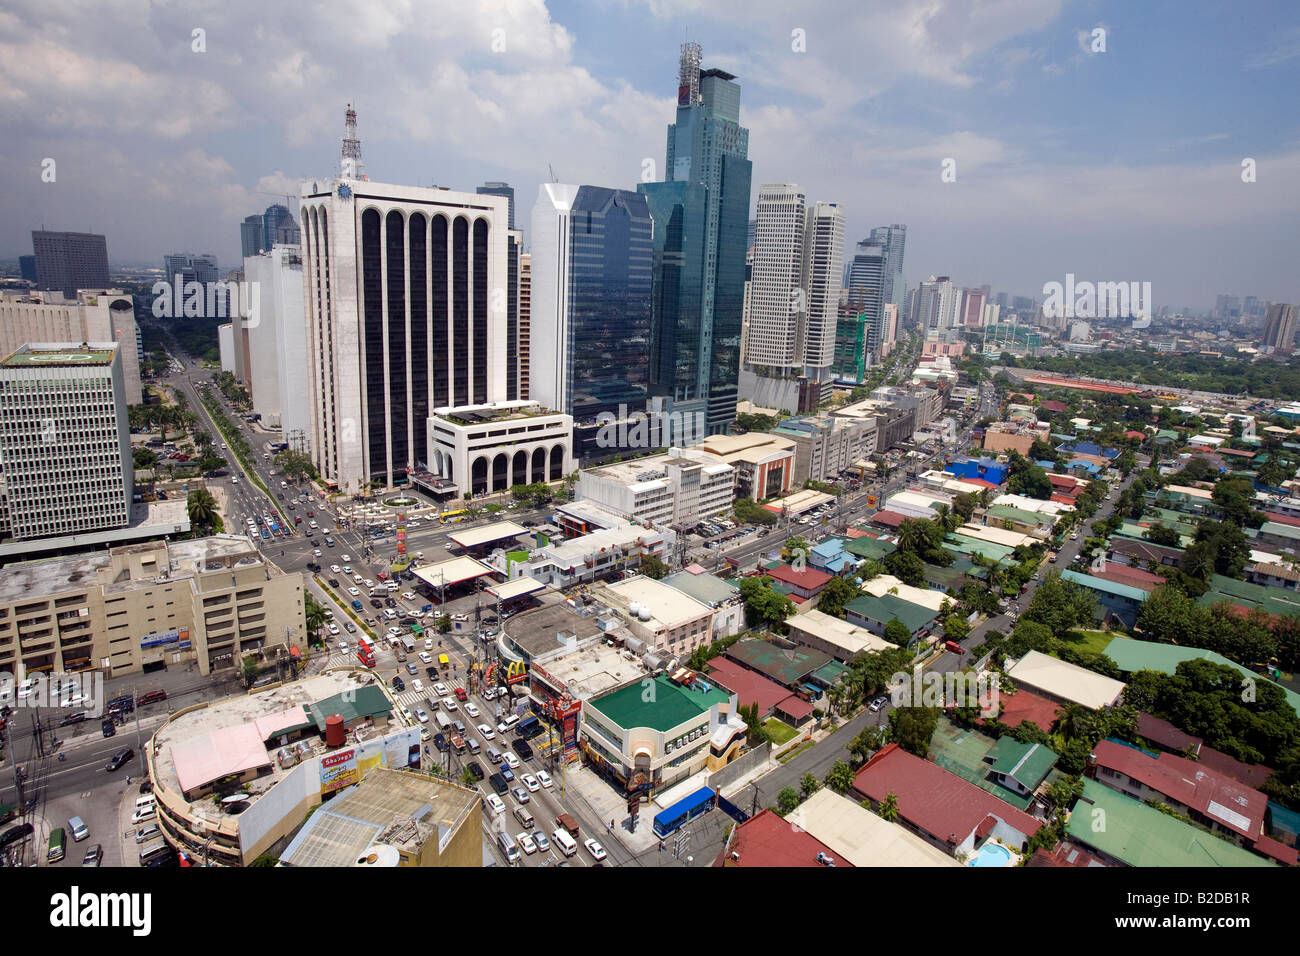 A view of Makati City, Metro Manila, Philippines. - Stock Image